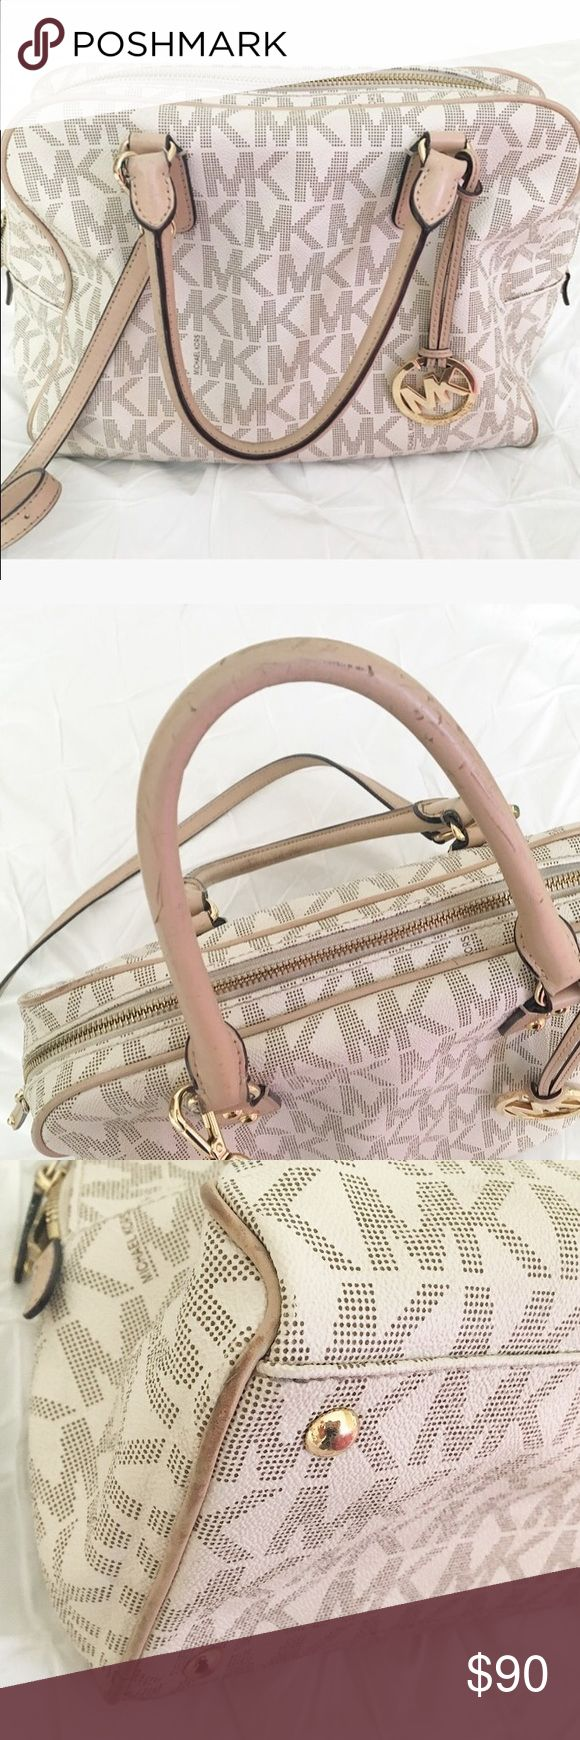 Used Authentic Michael Kors Bag 💗 Gorgeous Michael Kors bag, purchased from the Michael Kors store. Shows signs of normal wear on the purse and inside, pictures posted to show. Little stain inside the bag, not very noticeable. KORS Michael Kors Bags